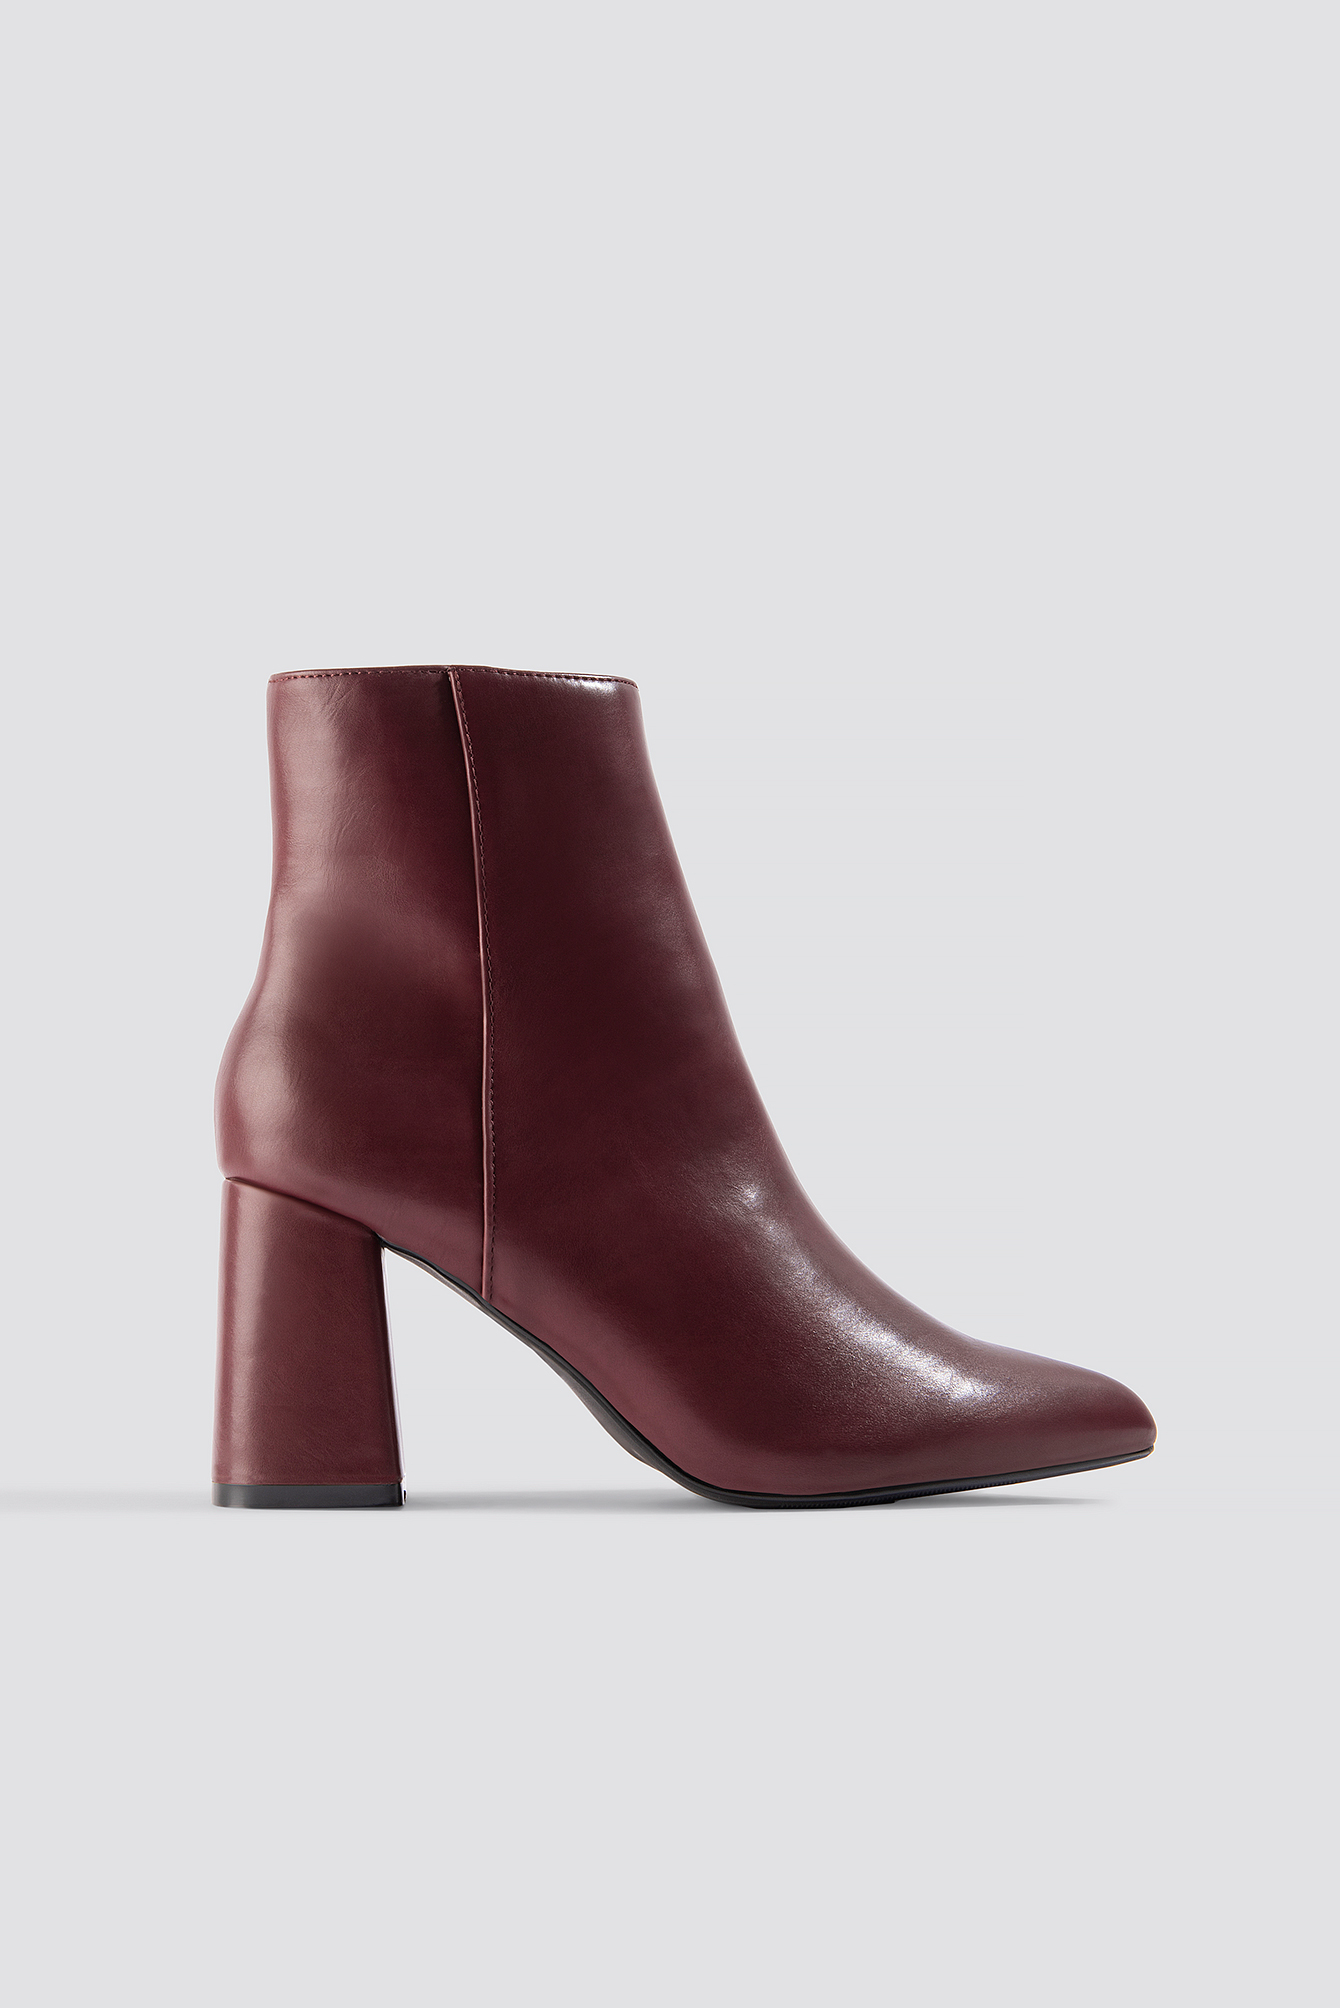 na-kd shoes -  Basic Block Heel Booties - Red